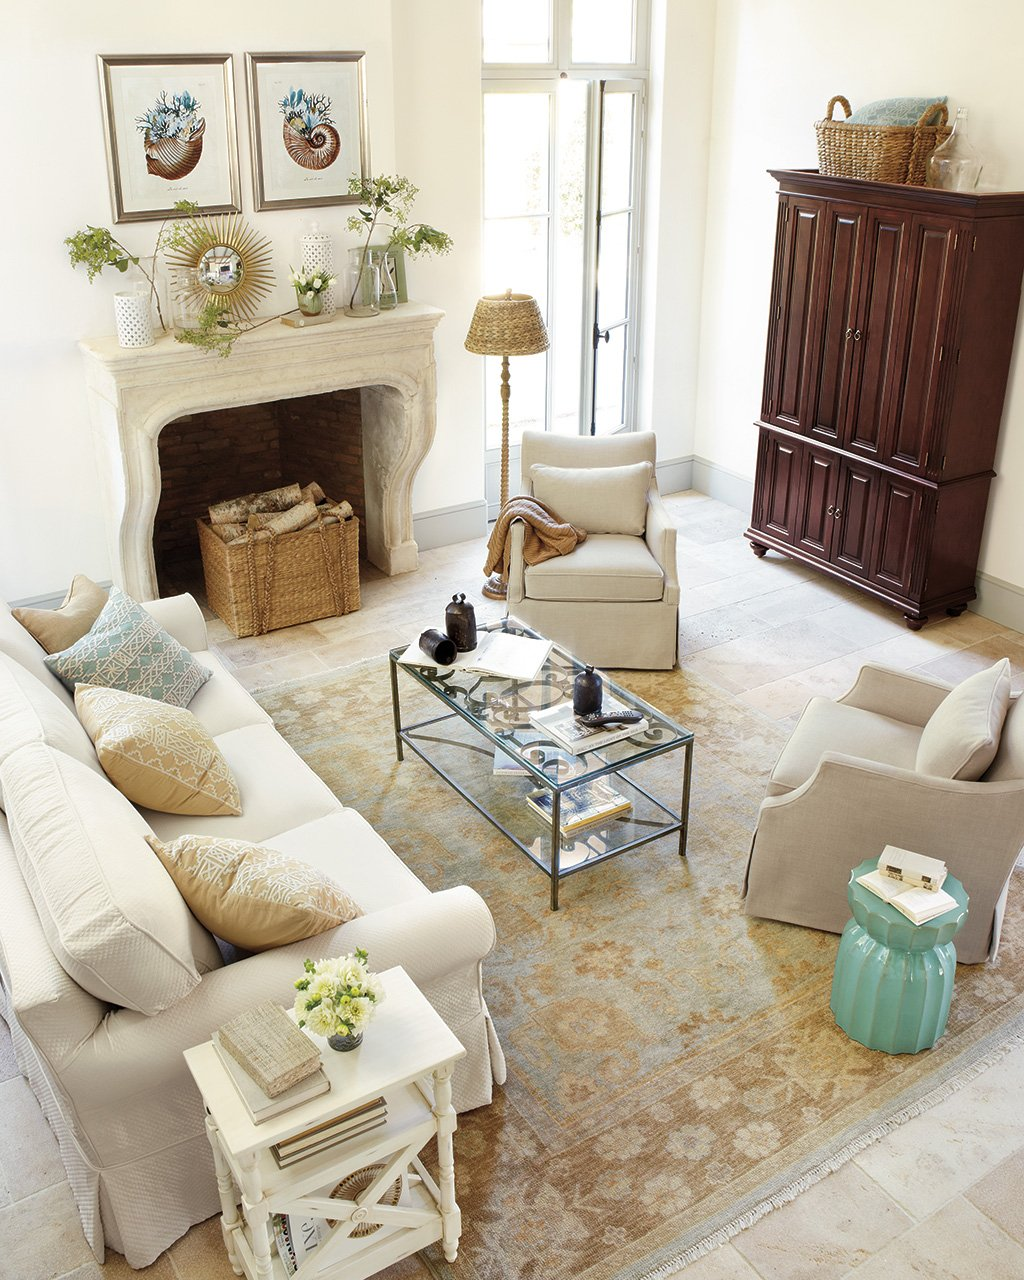 ways layout your living room how decorate table between two accent chairs larkin upholstered swivel glider slim wick media armoire valentino rug baldwin sofa annette magazine side